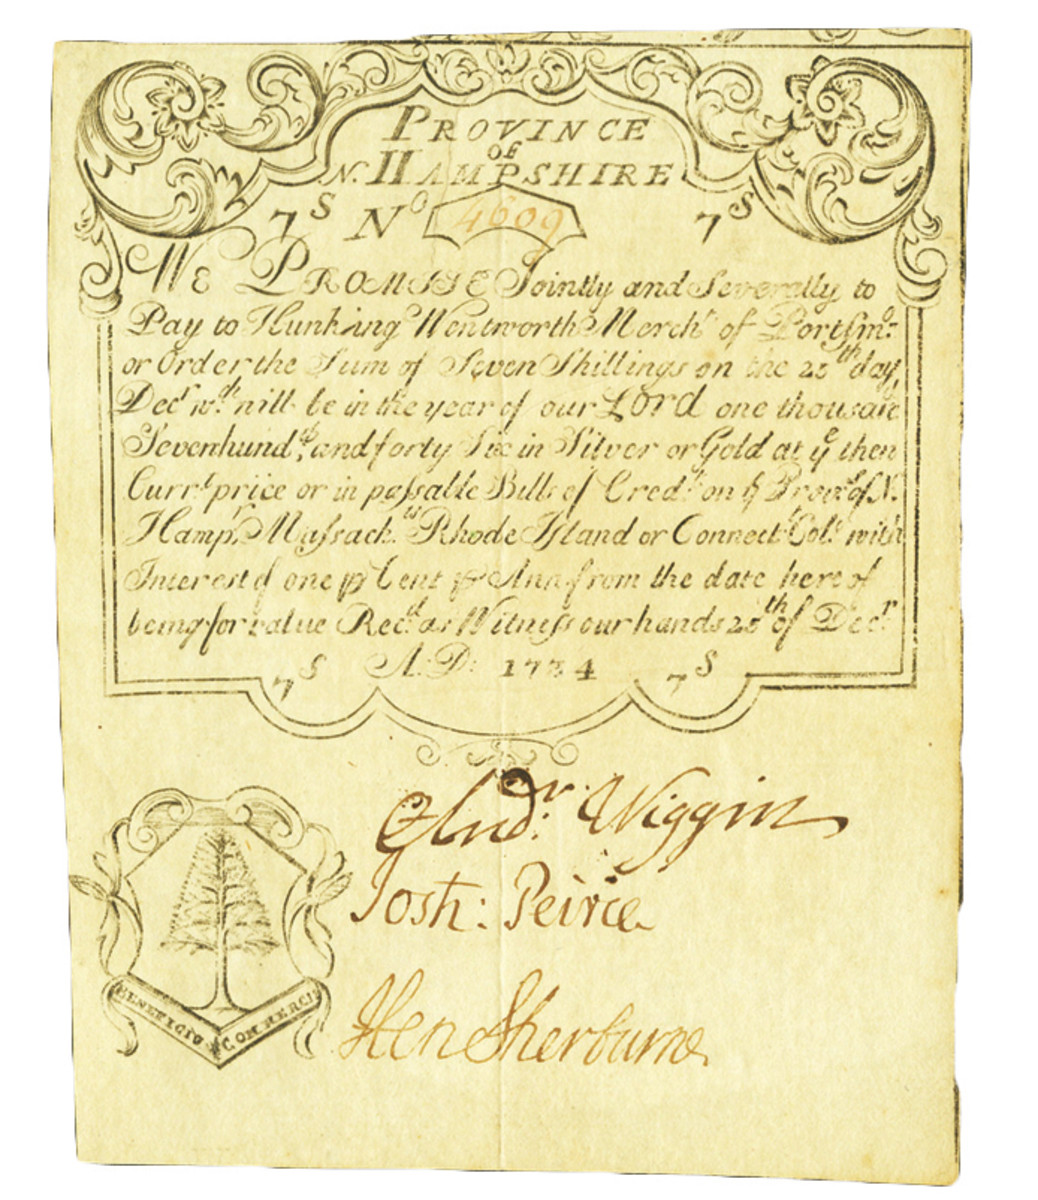 1734 New Hampshire note, signed by Andrew Wiggins, maternal ancestor.